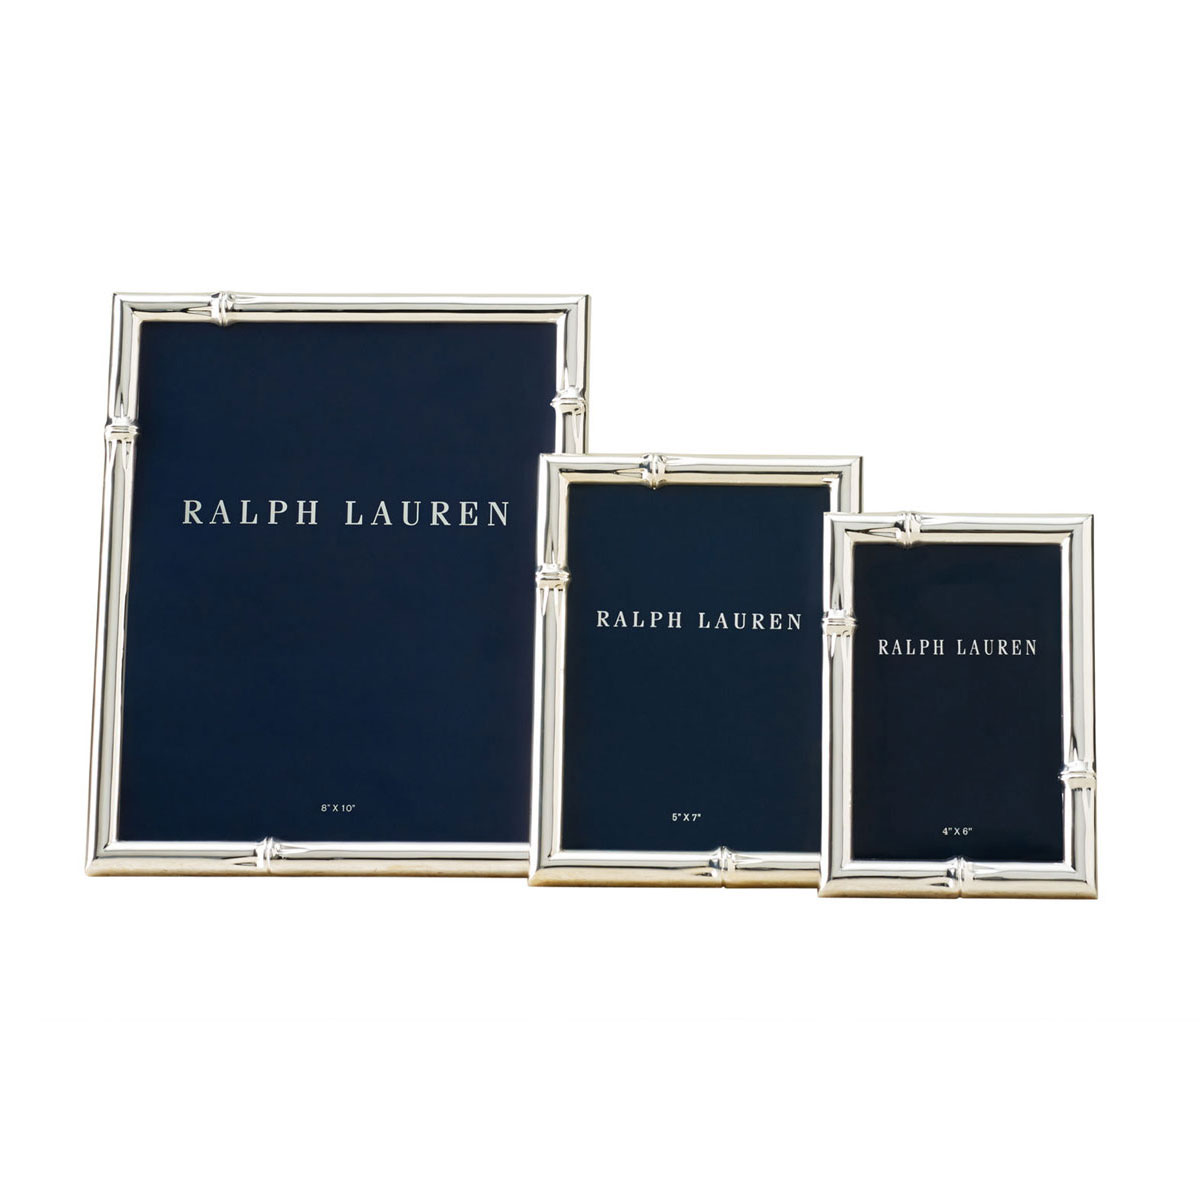 "Ralph Lauren Bryce Bamboo 8x10"" Picture Frame"